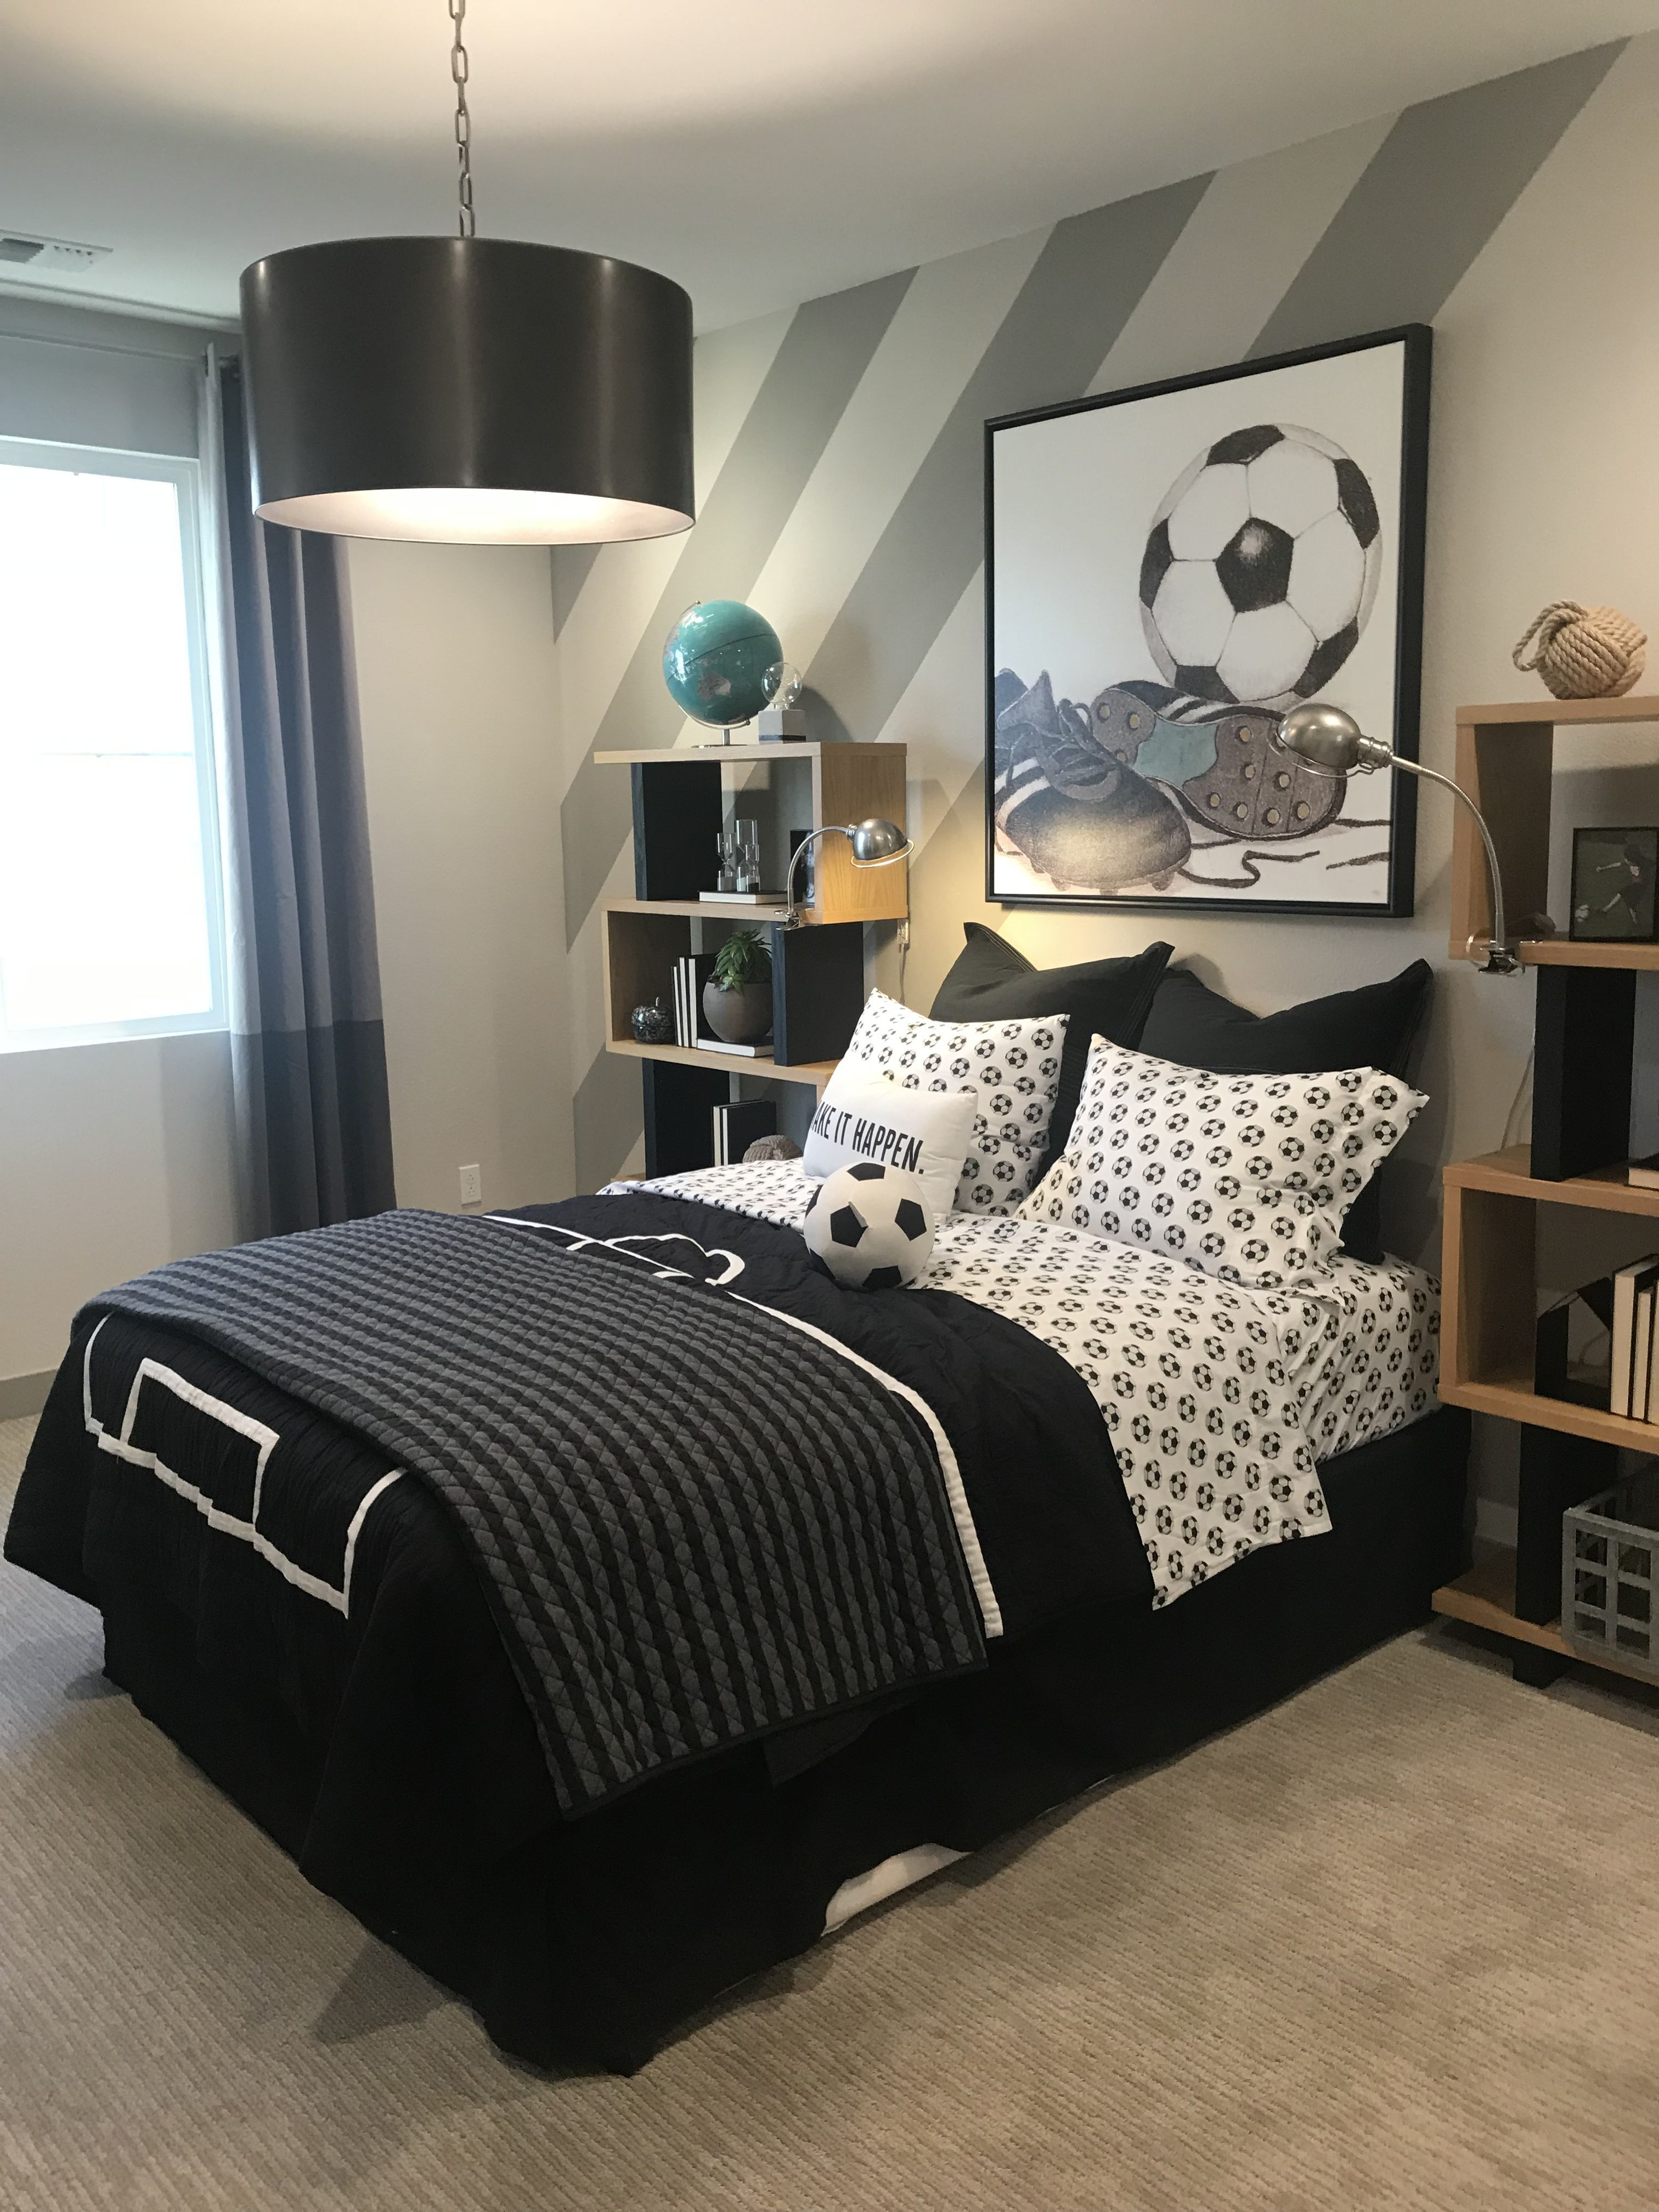 29 Marvelous Boys Bedroom Ideas That Will Inspire You Tween Toddler Teenagers Sports Diy Car Cool Bedrooms For Boys Boy Bedroom Design Boys Bedroom Decor